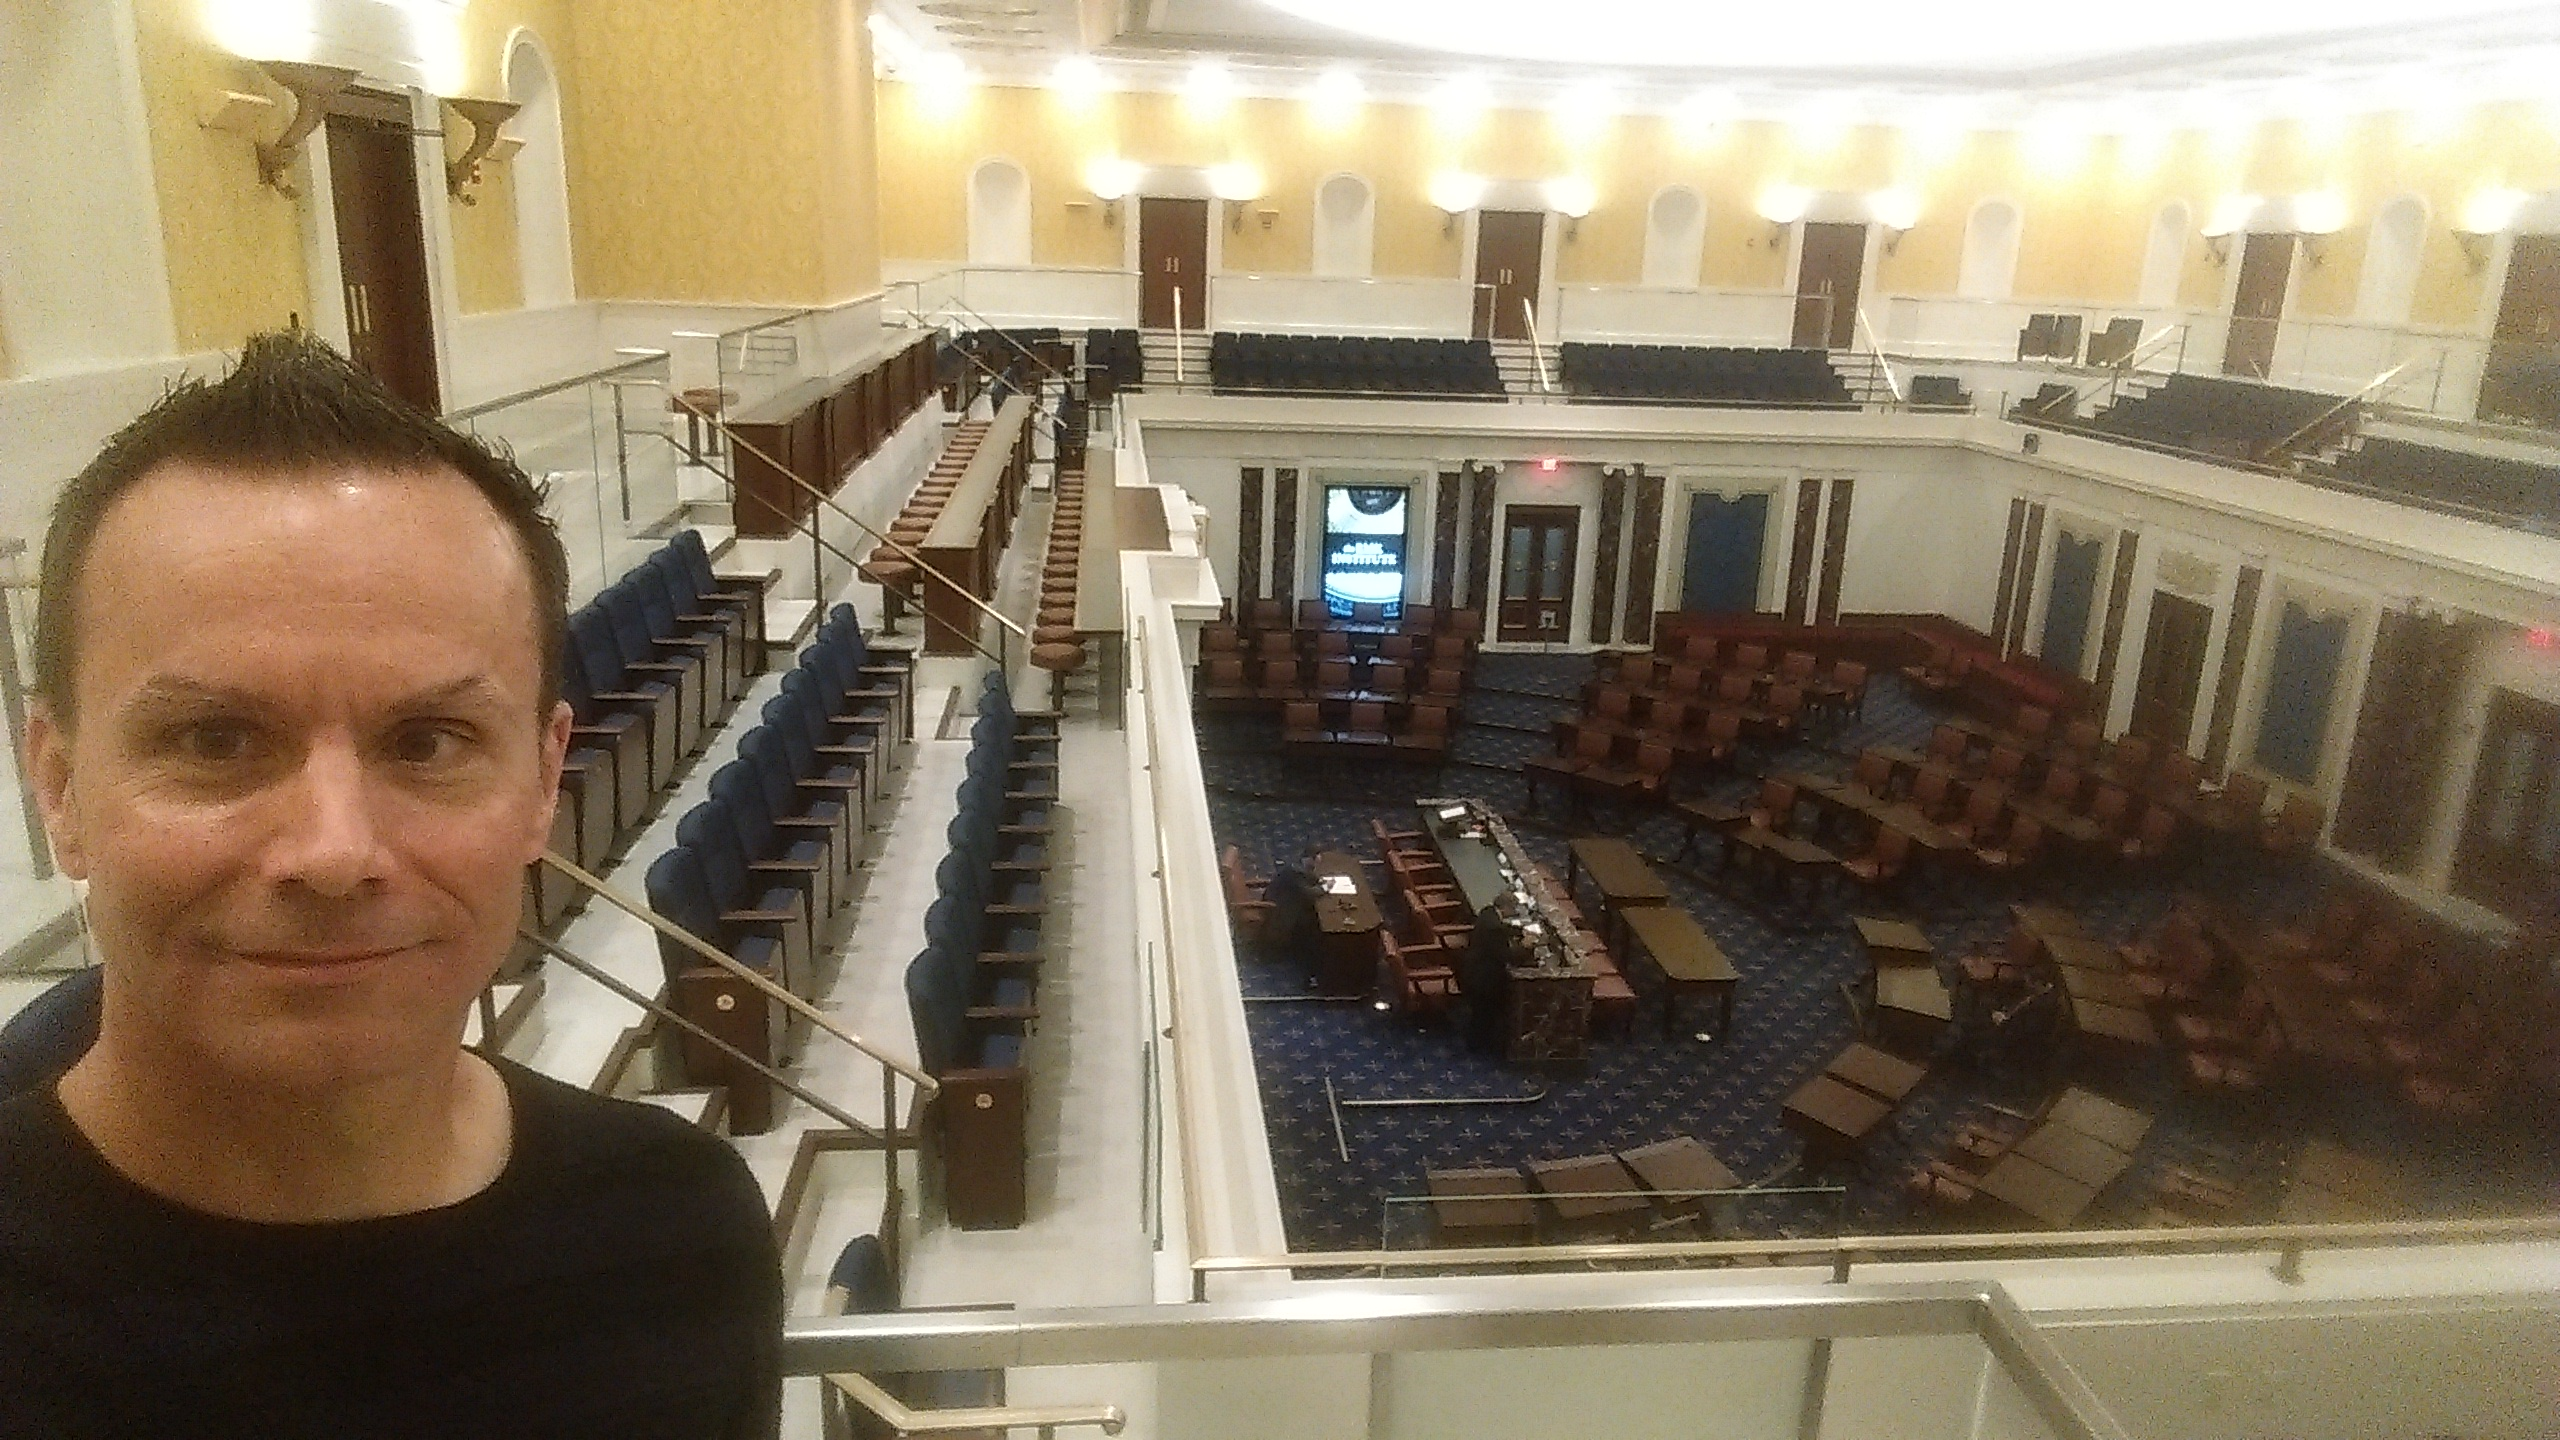 Visiting the replica of the Senate at the Edward M. Kennedy Institute for the US Senate last weekend.